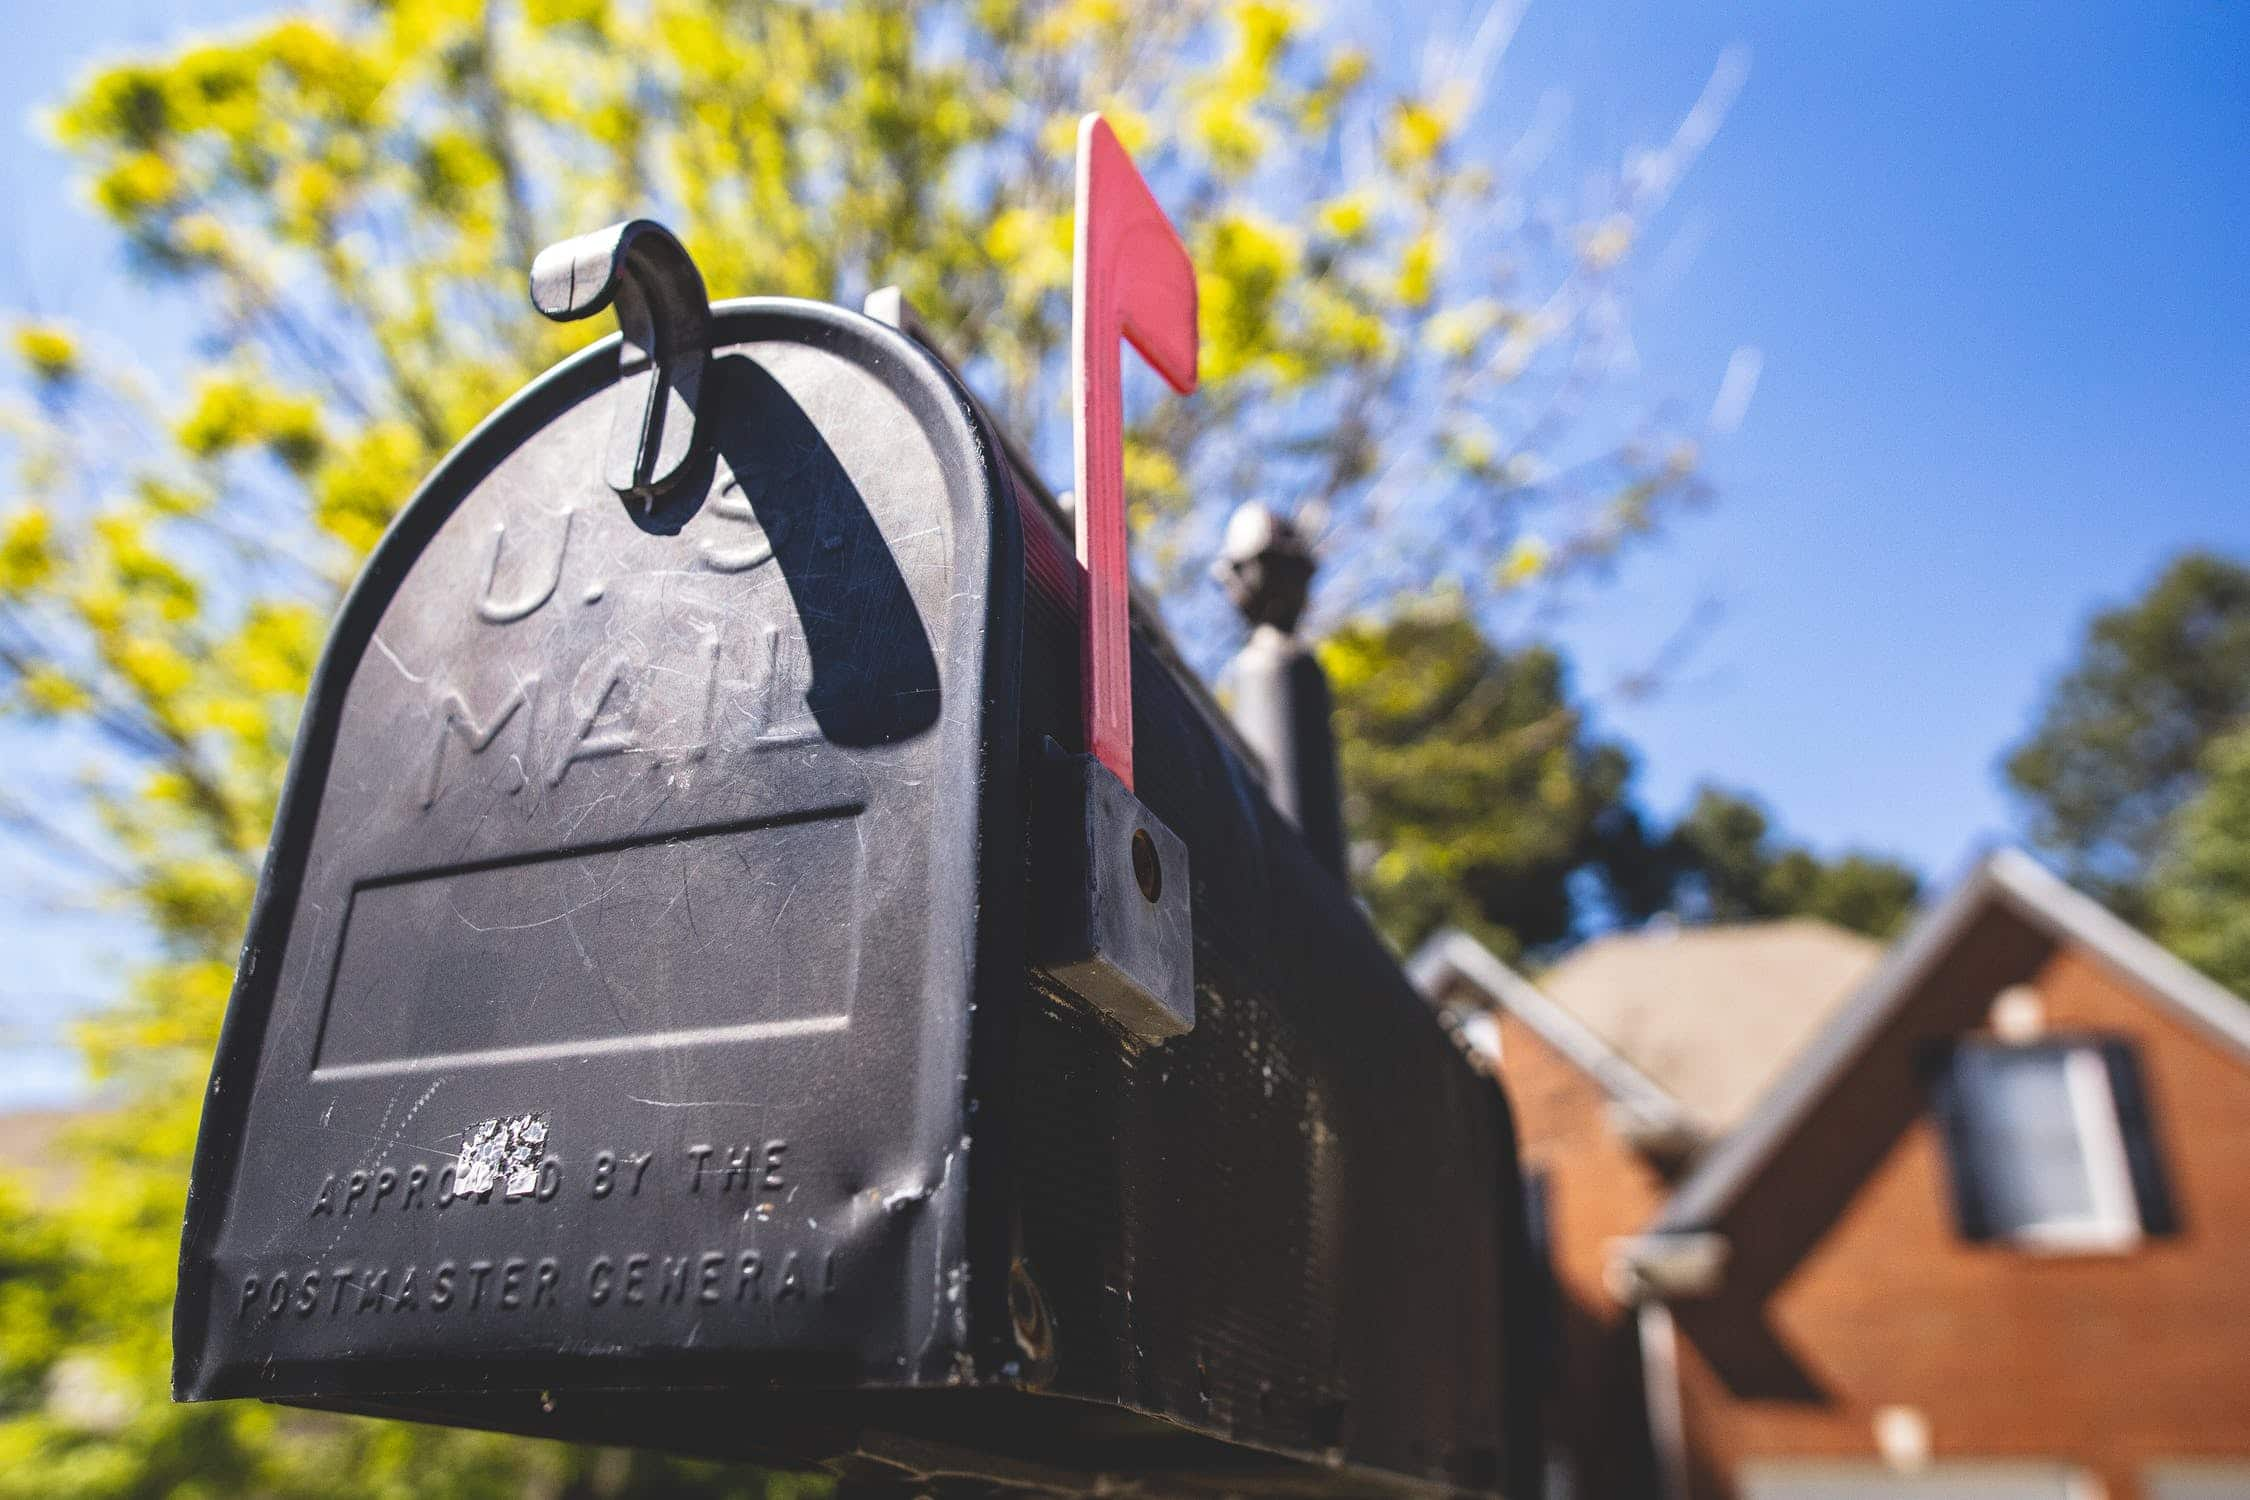 Relocating a Mailbox – Four Easy Steps for Moving Your Mailbox